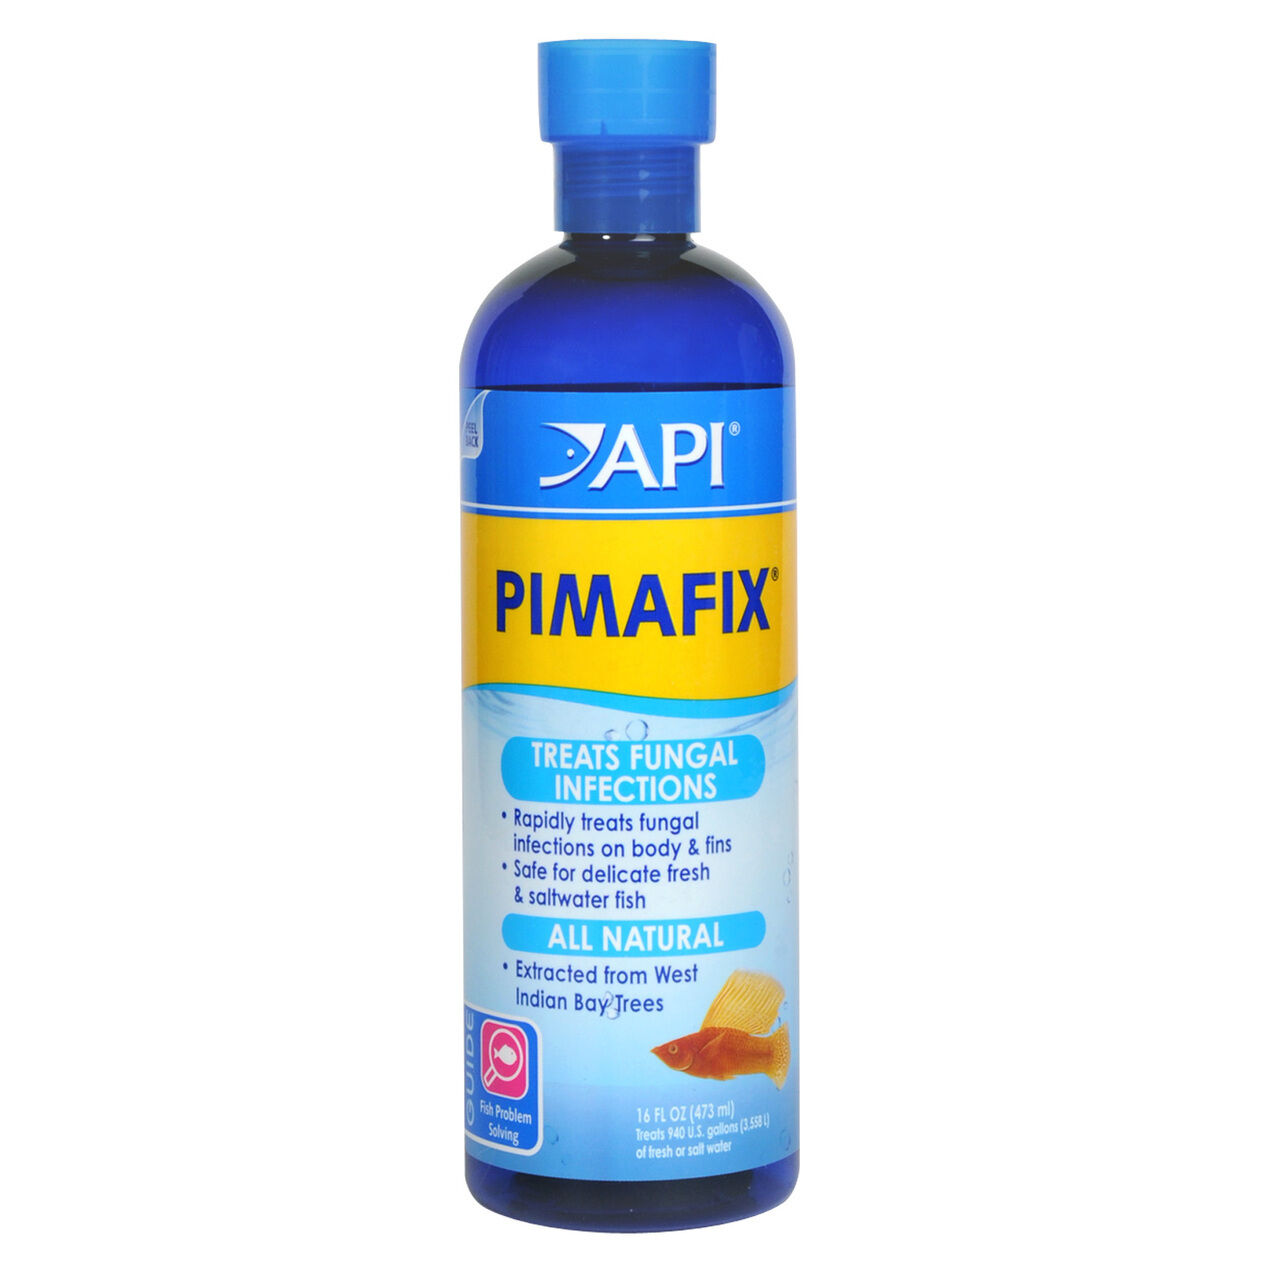 API Pimafix (Natural Remedy)